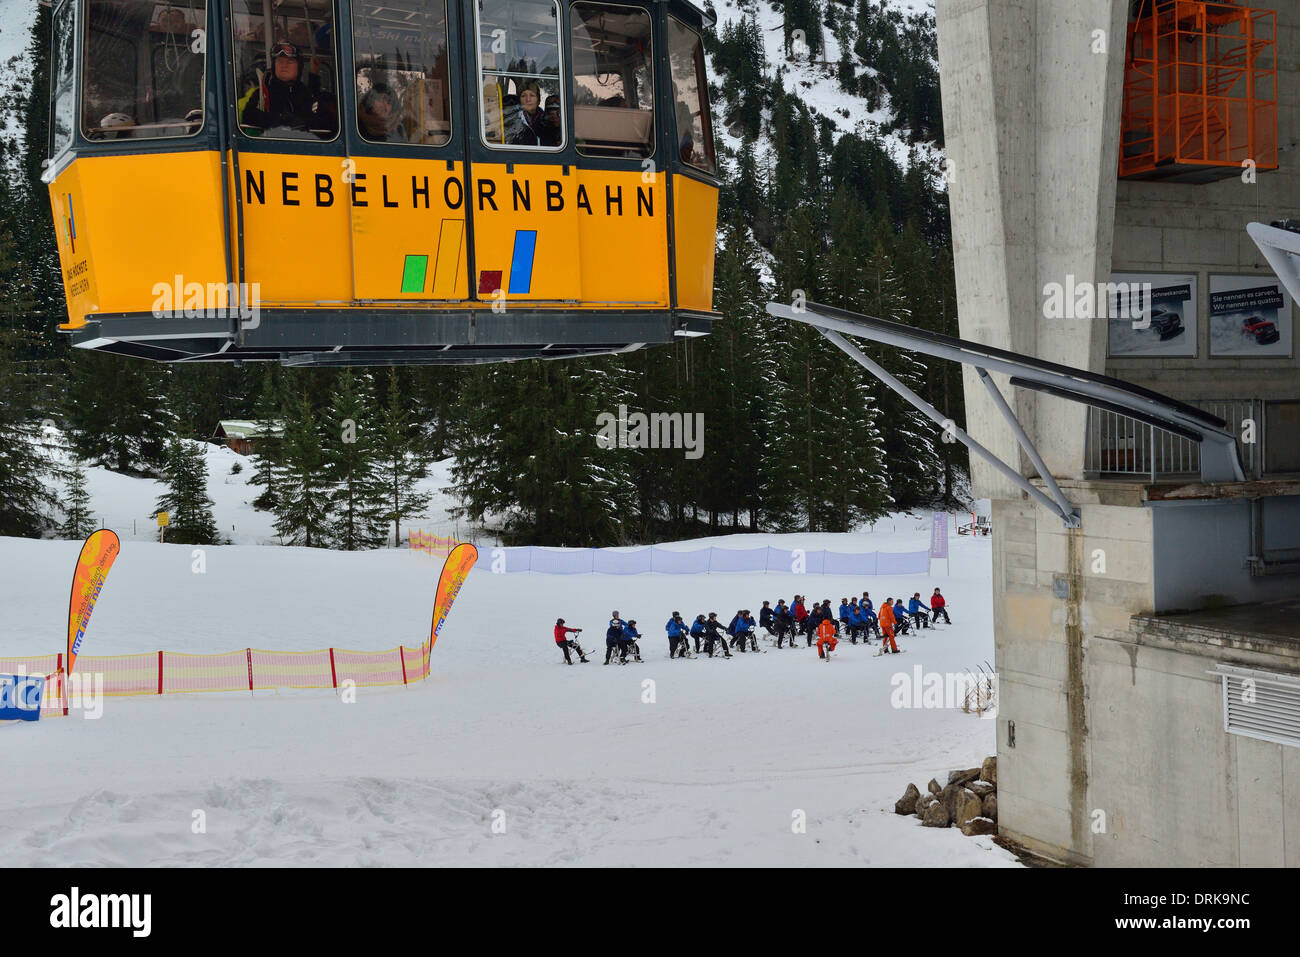 Nebelhorn cablecar docking at 1st of the 2 transfer stations to Nebelhorn's summit (2.224m).Skiers about to descend on ski bikes - Stock Image